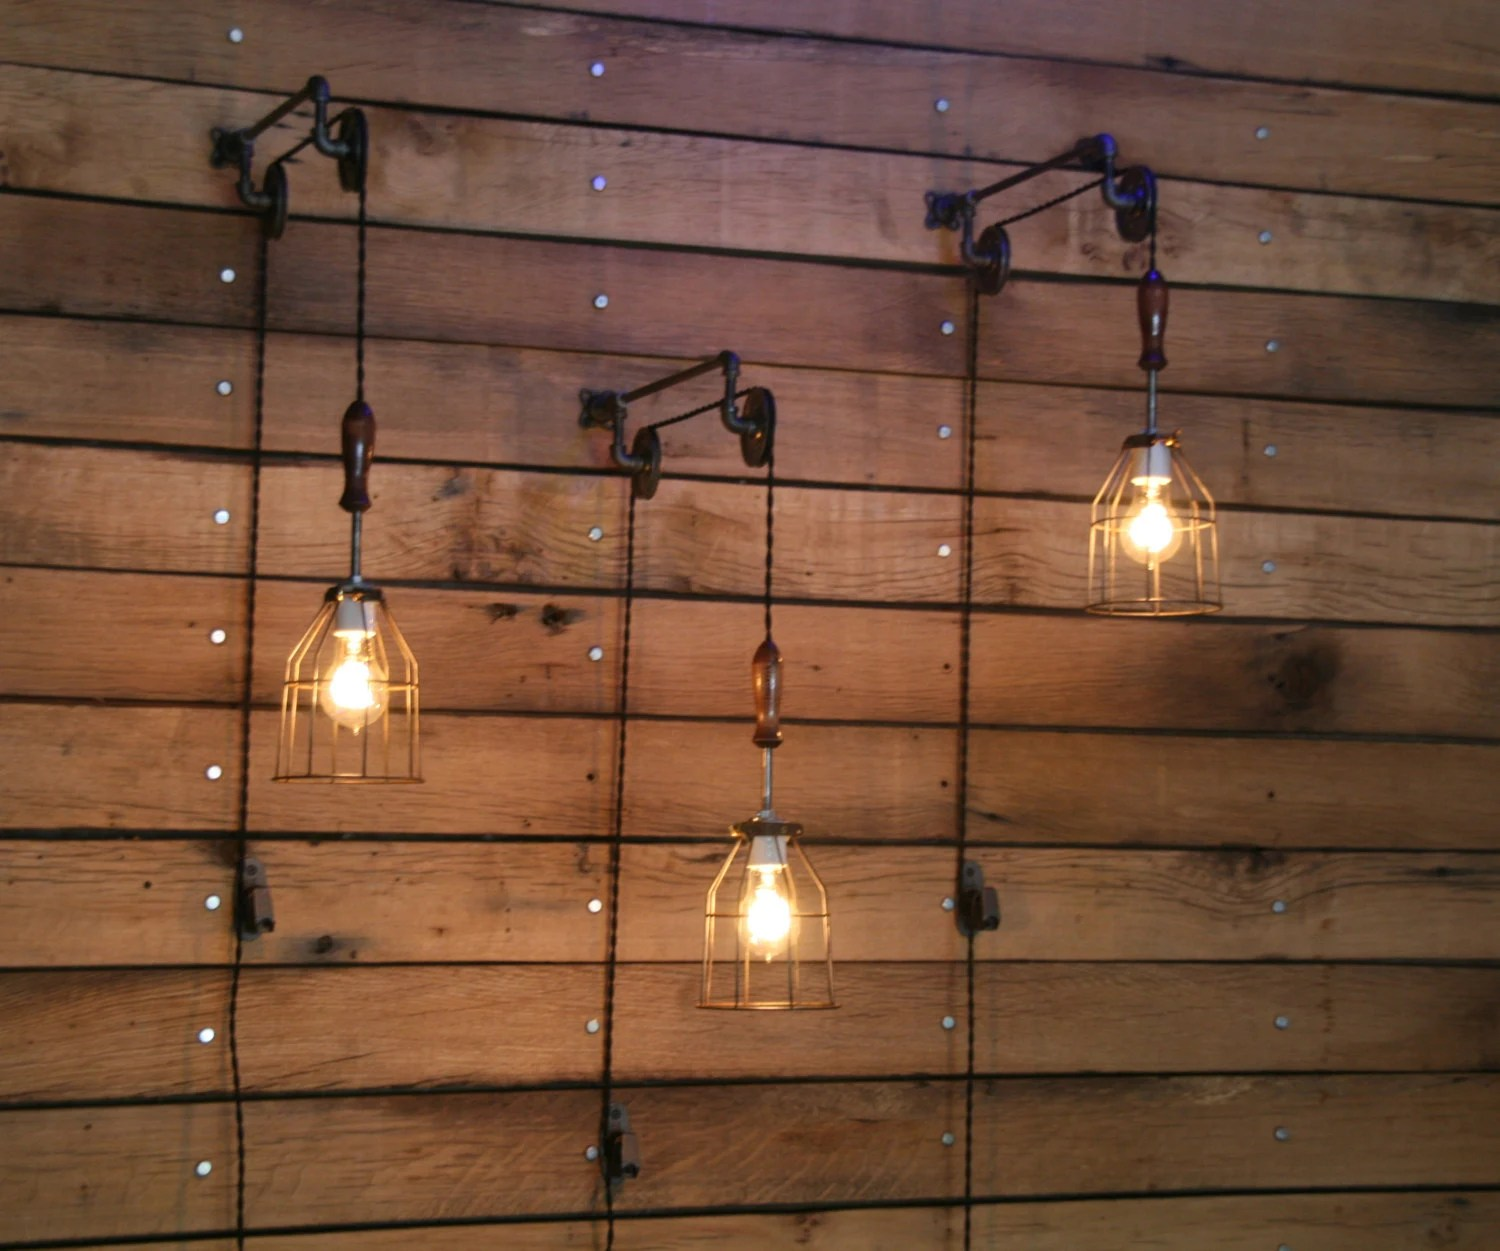 Wall Mounted Industrial Lights Pulley Wall Mount With Industrial Cage Light And Wooden Handle